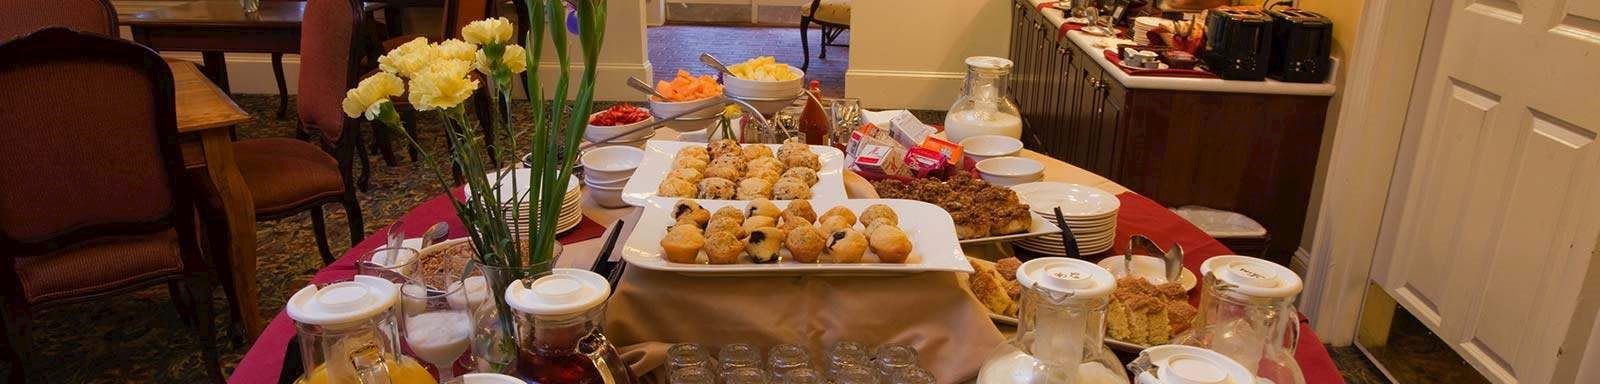 Dining at The Bellmoor Inn and Spa Hotel, Delaware